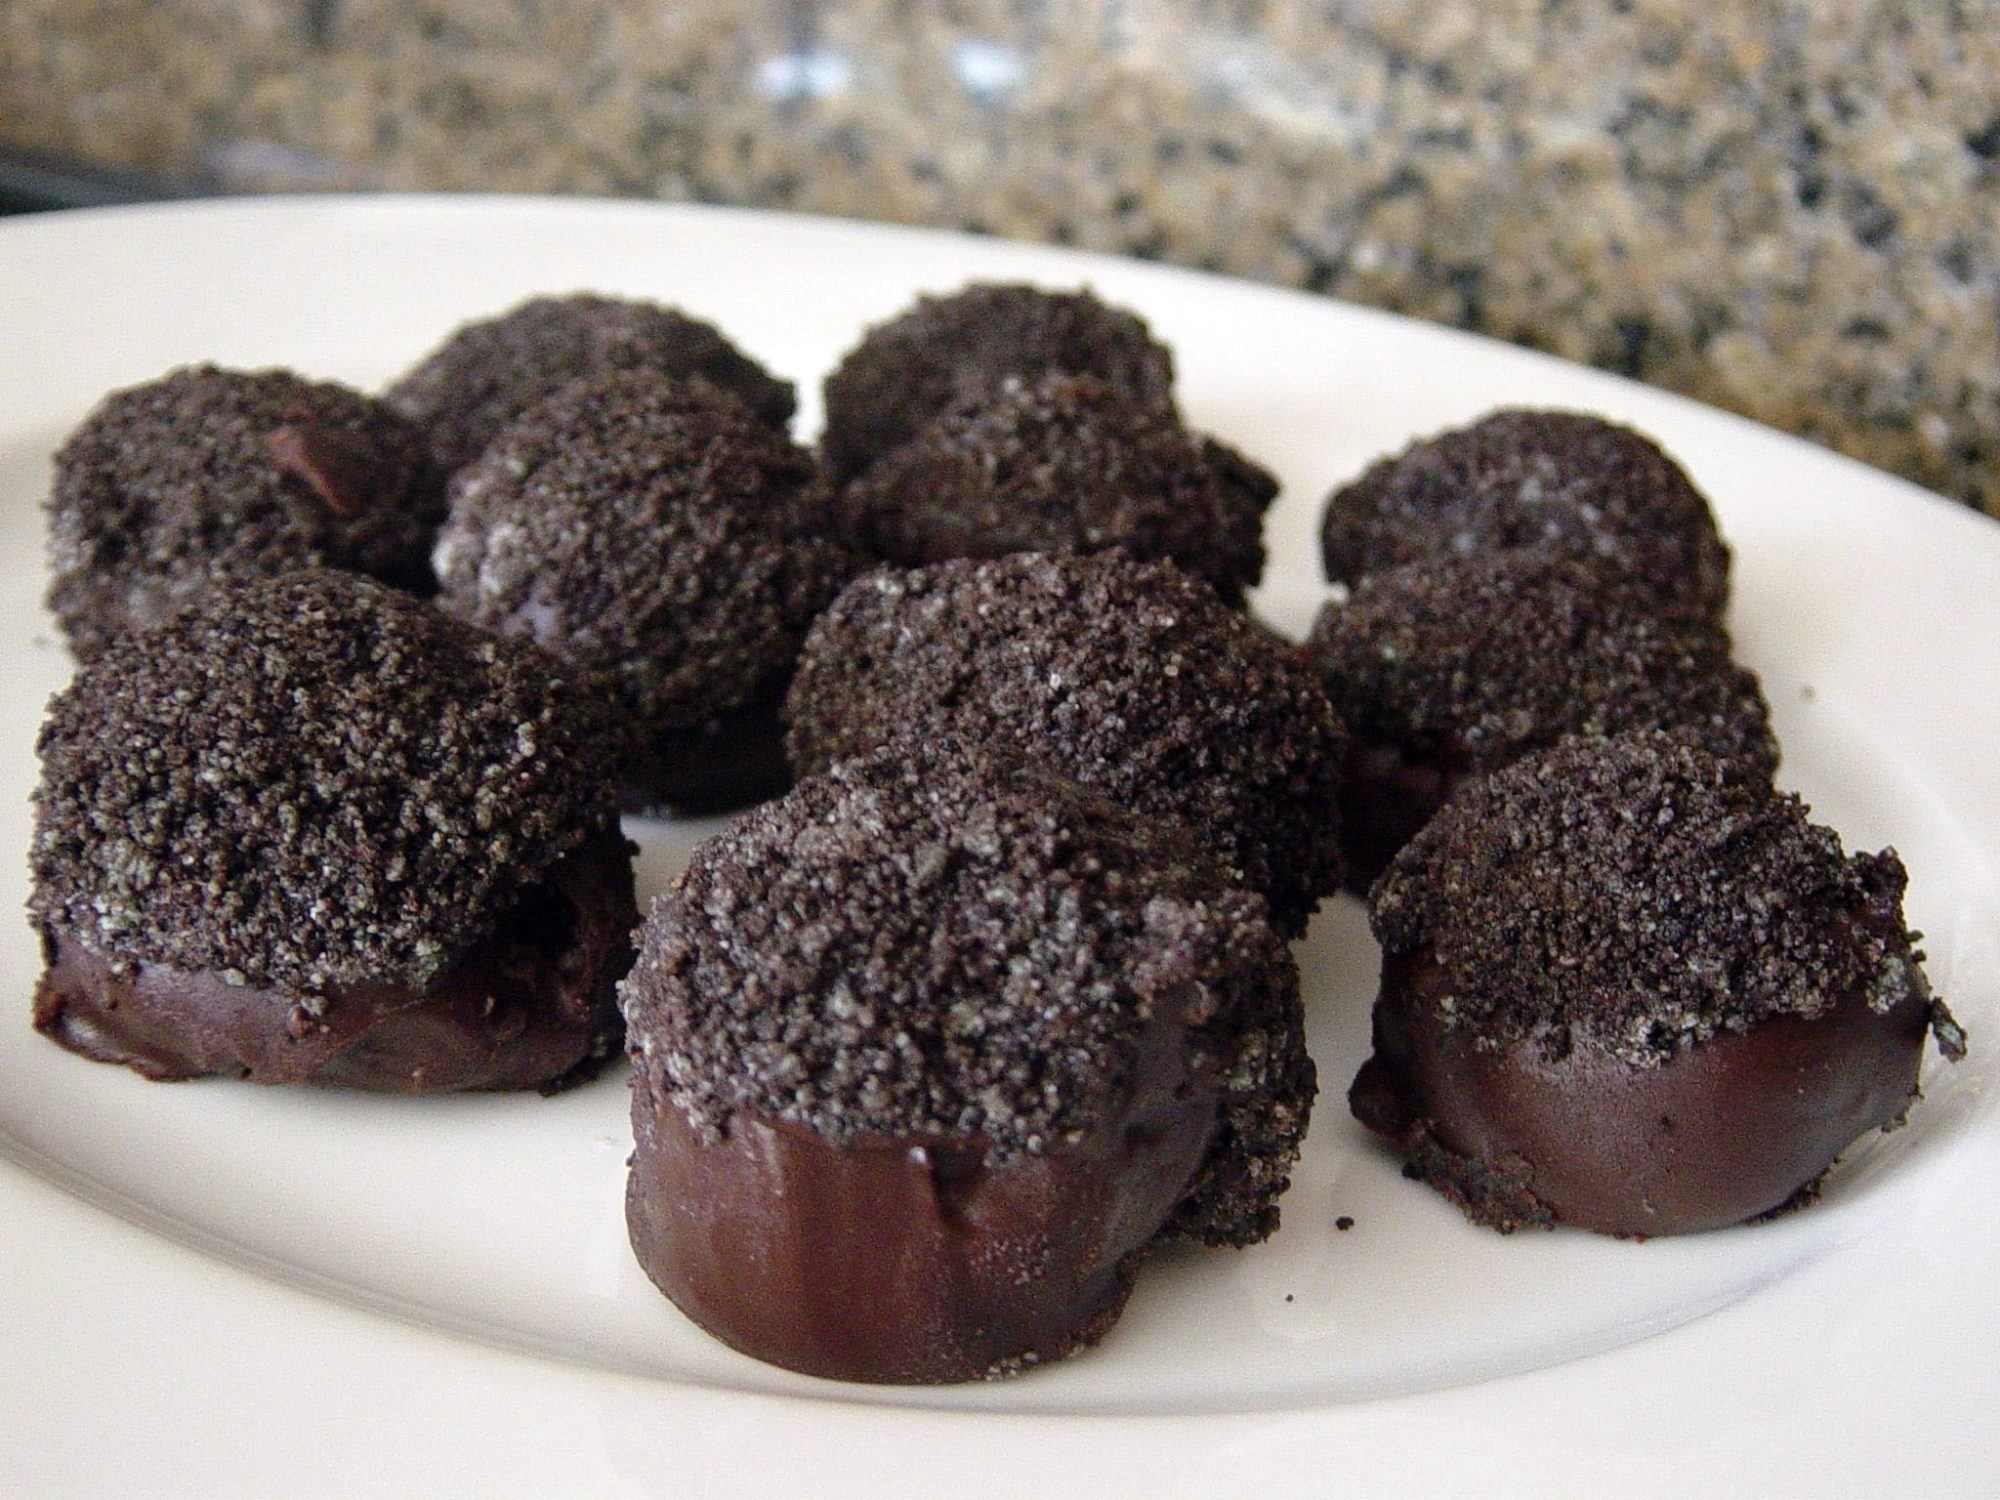 a plate of cookie balls or cake balls coated in chocolate and topped with Oreo cookie crumbs